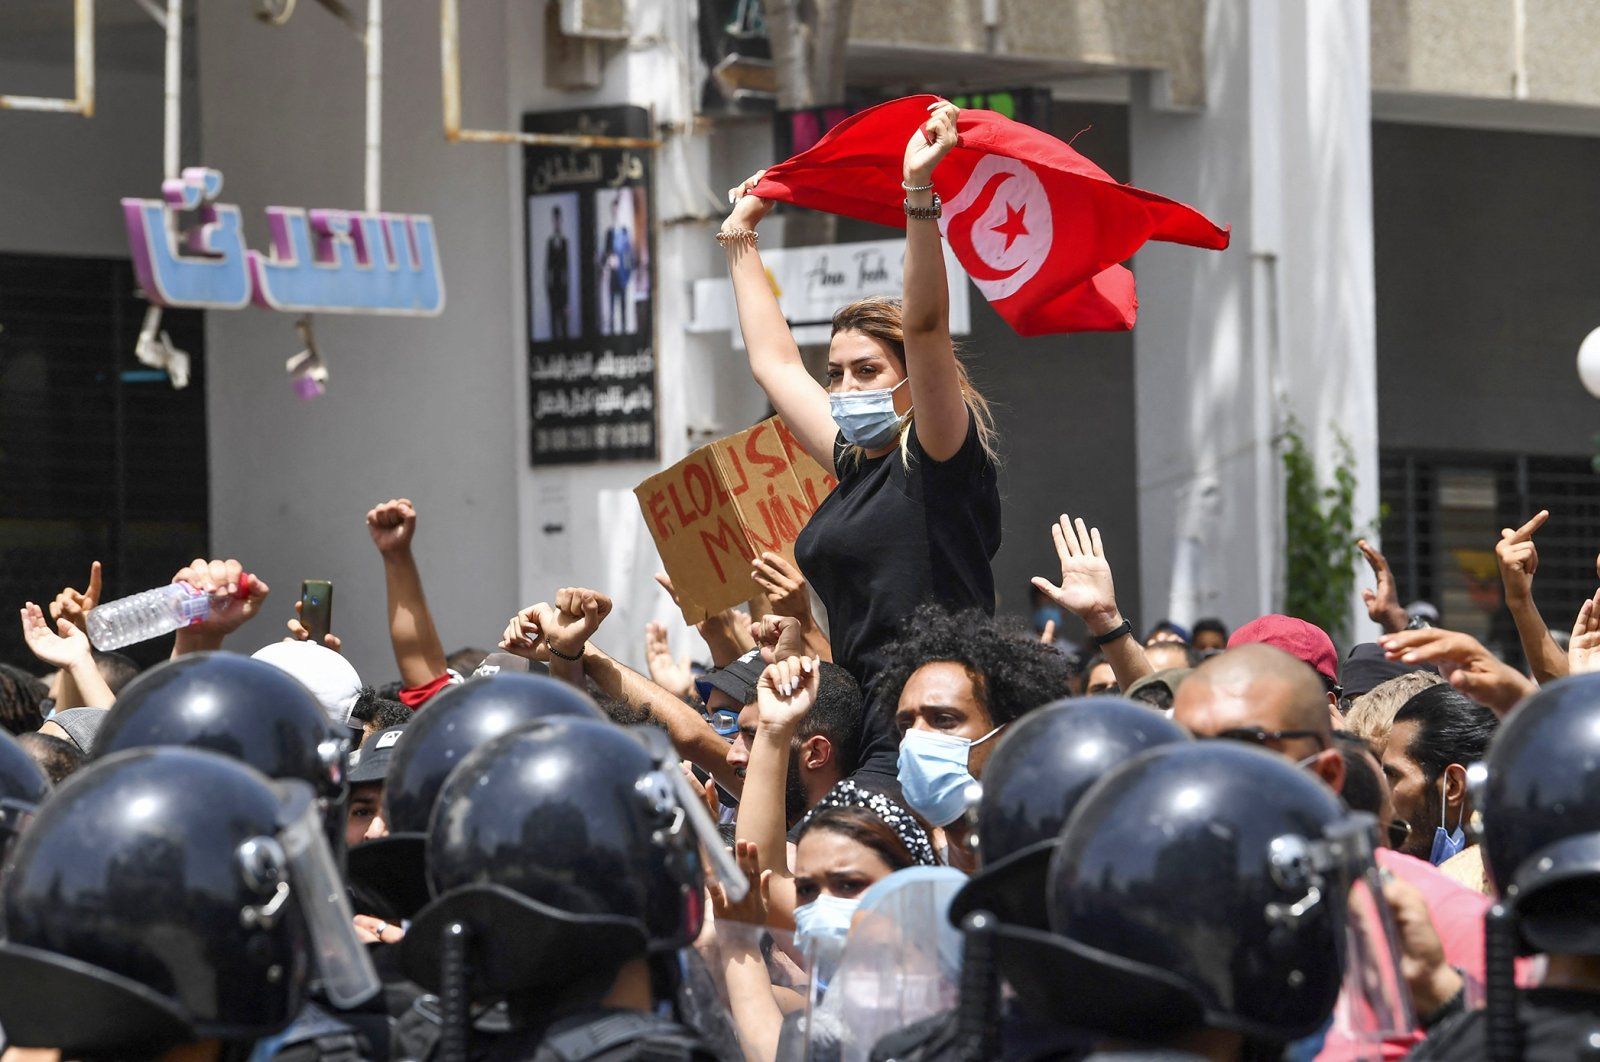 A Tunisian protester lifts a national flag at an anti-government rally as security forces block off the road in front of the Parliament in the capital Tunis on July 25, 2021. (AFP Photo)